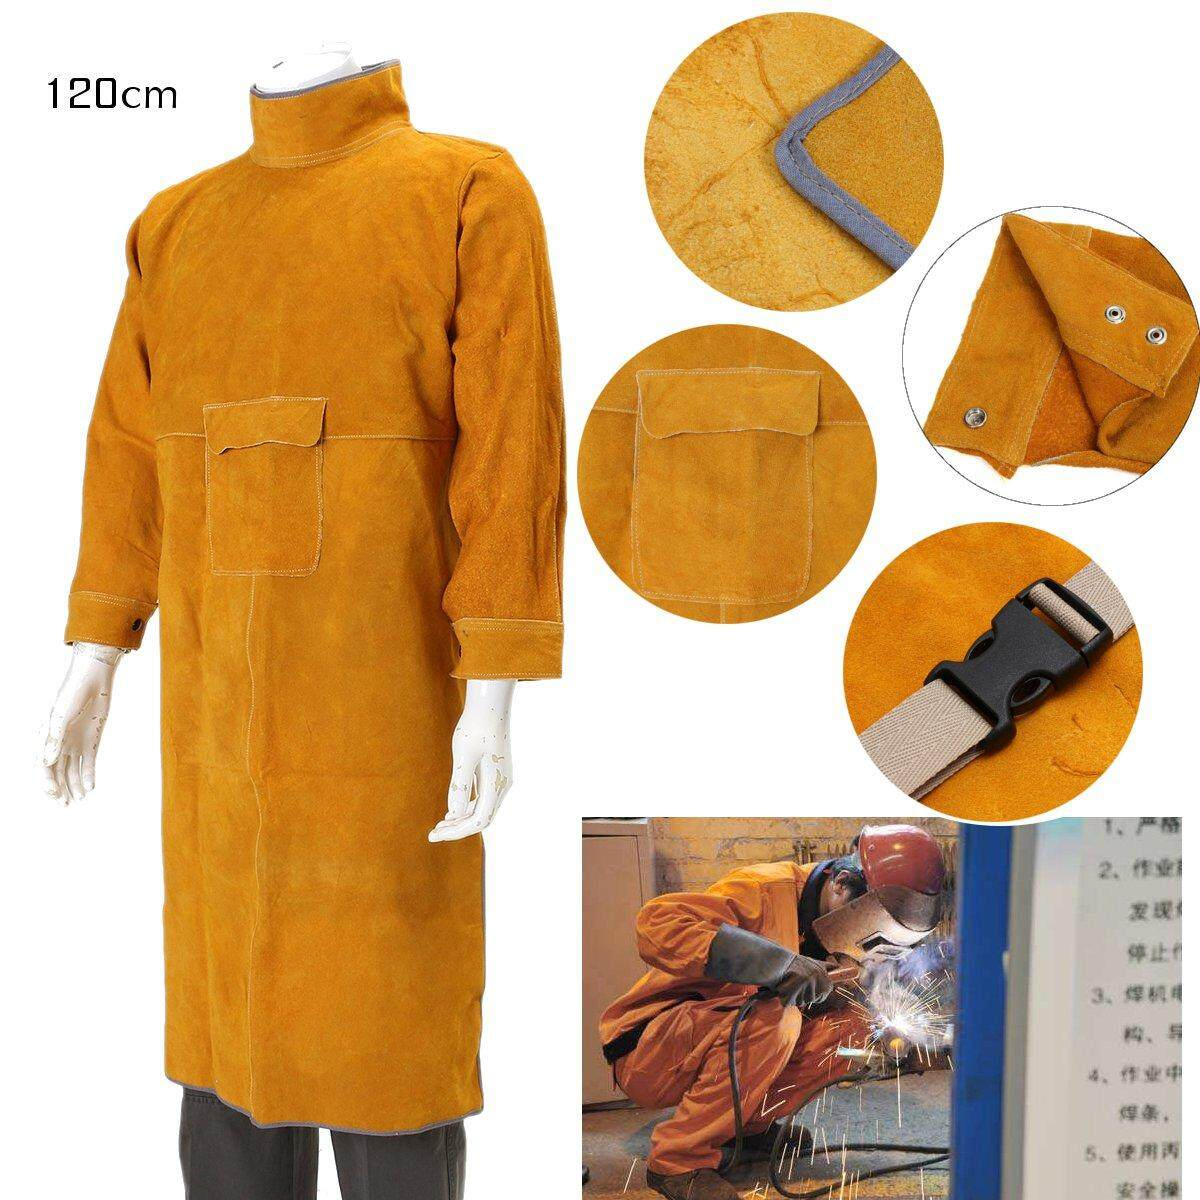 120cm Leather Welding Long Coat Apron Protective Clothing Apparel Suit Welder - intl